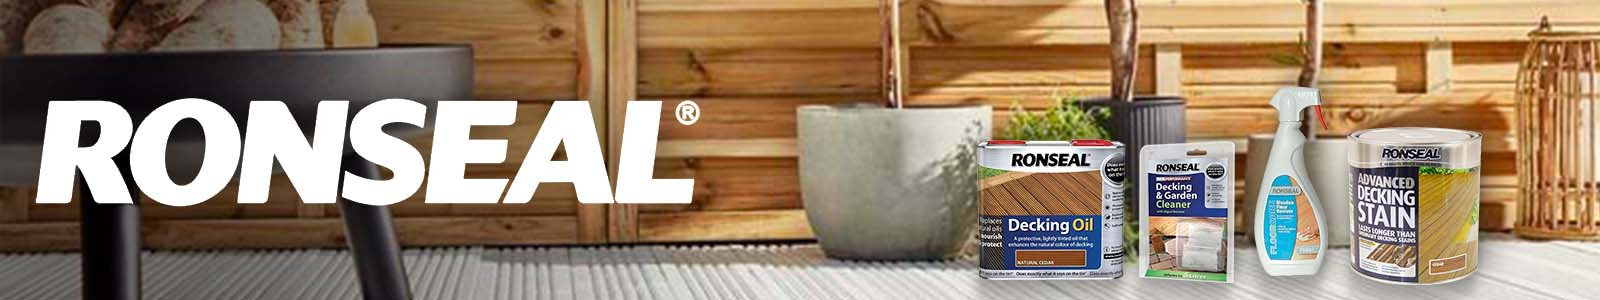 Ronseal wood protection